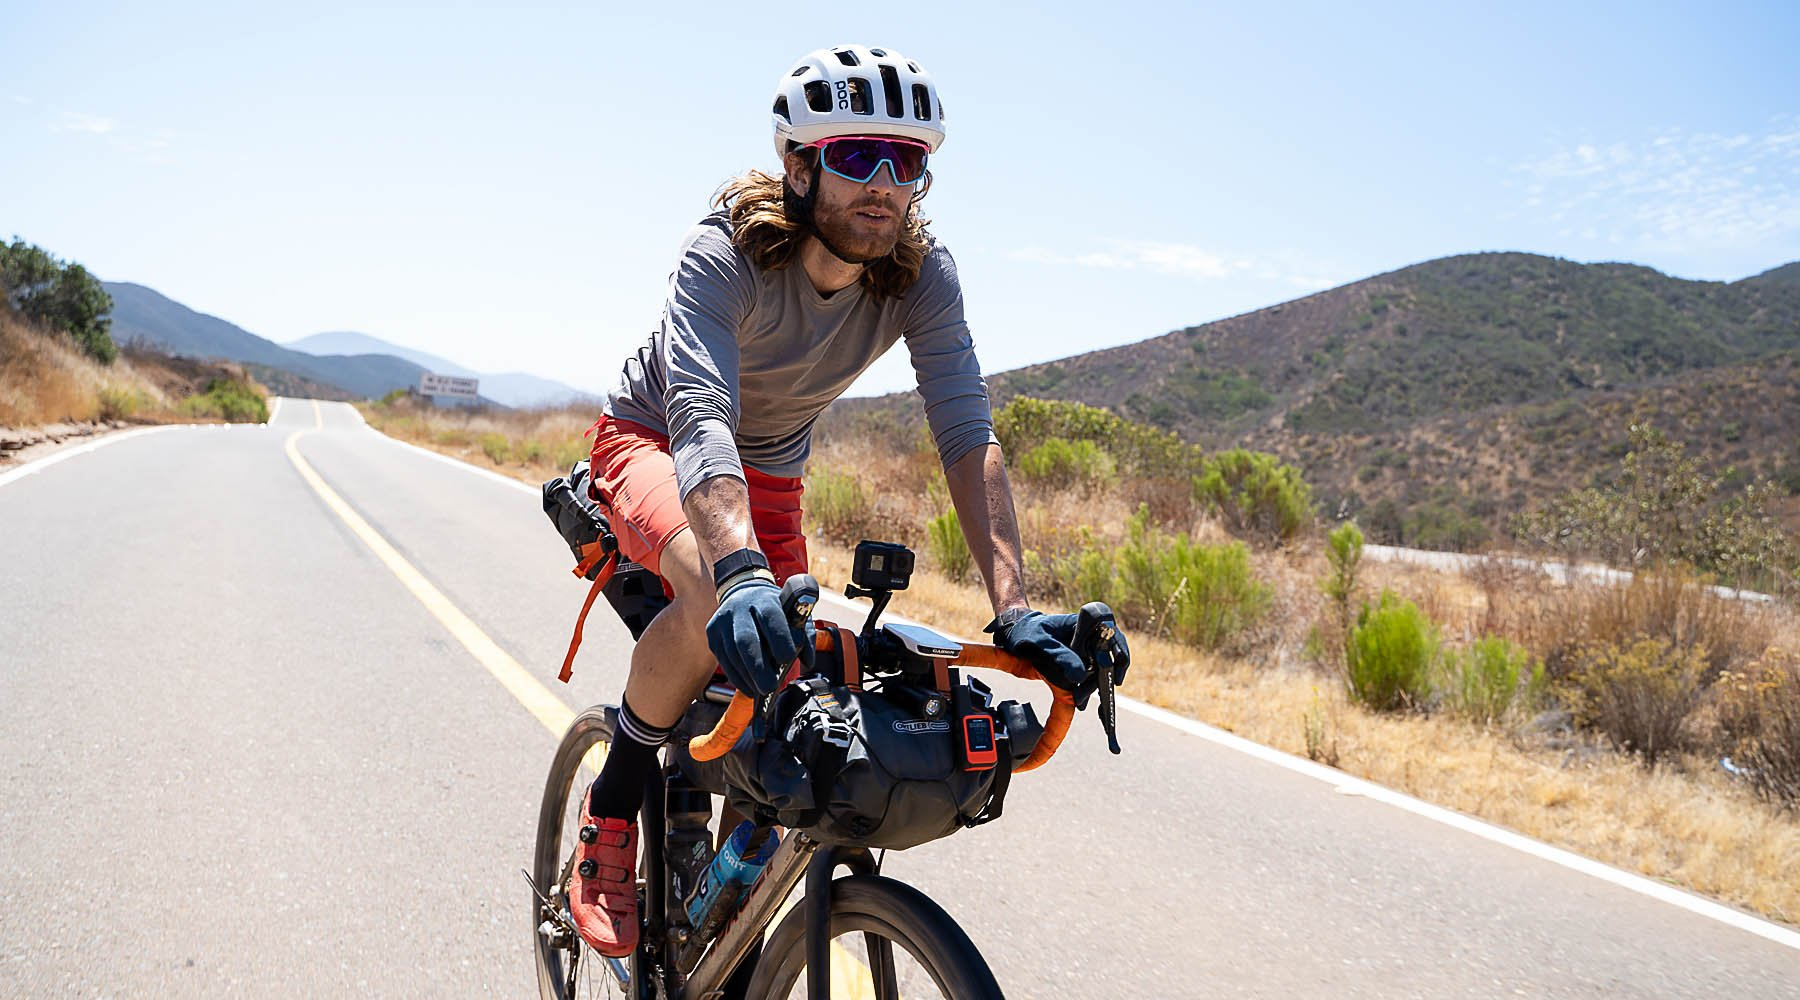 Bikepacking with James Stout